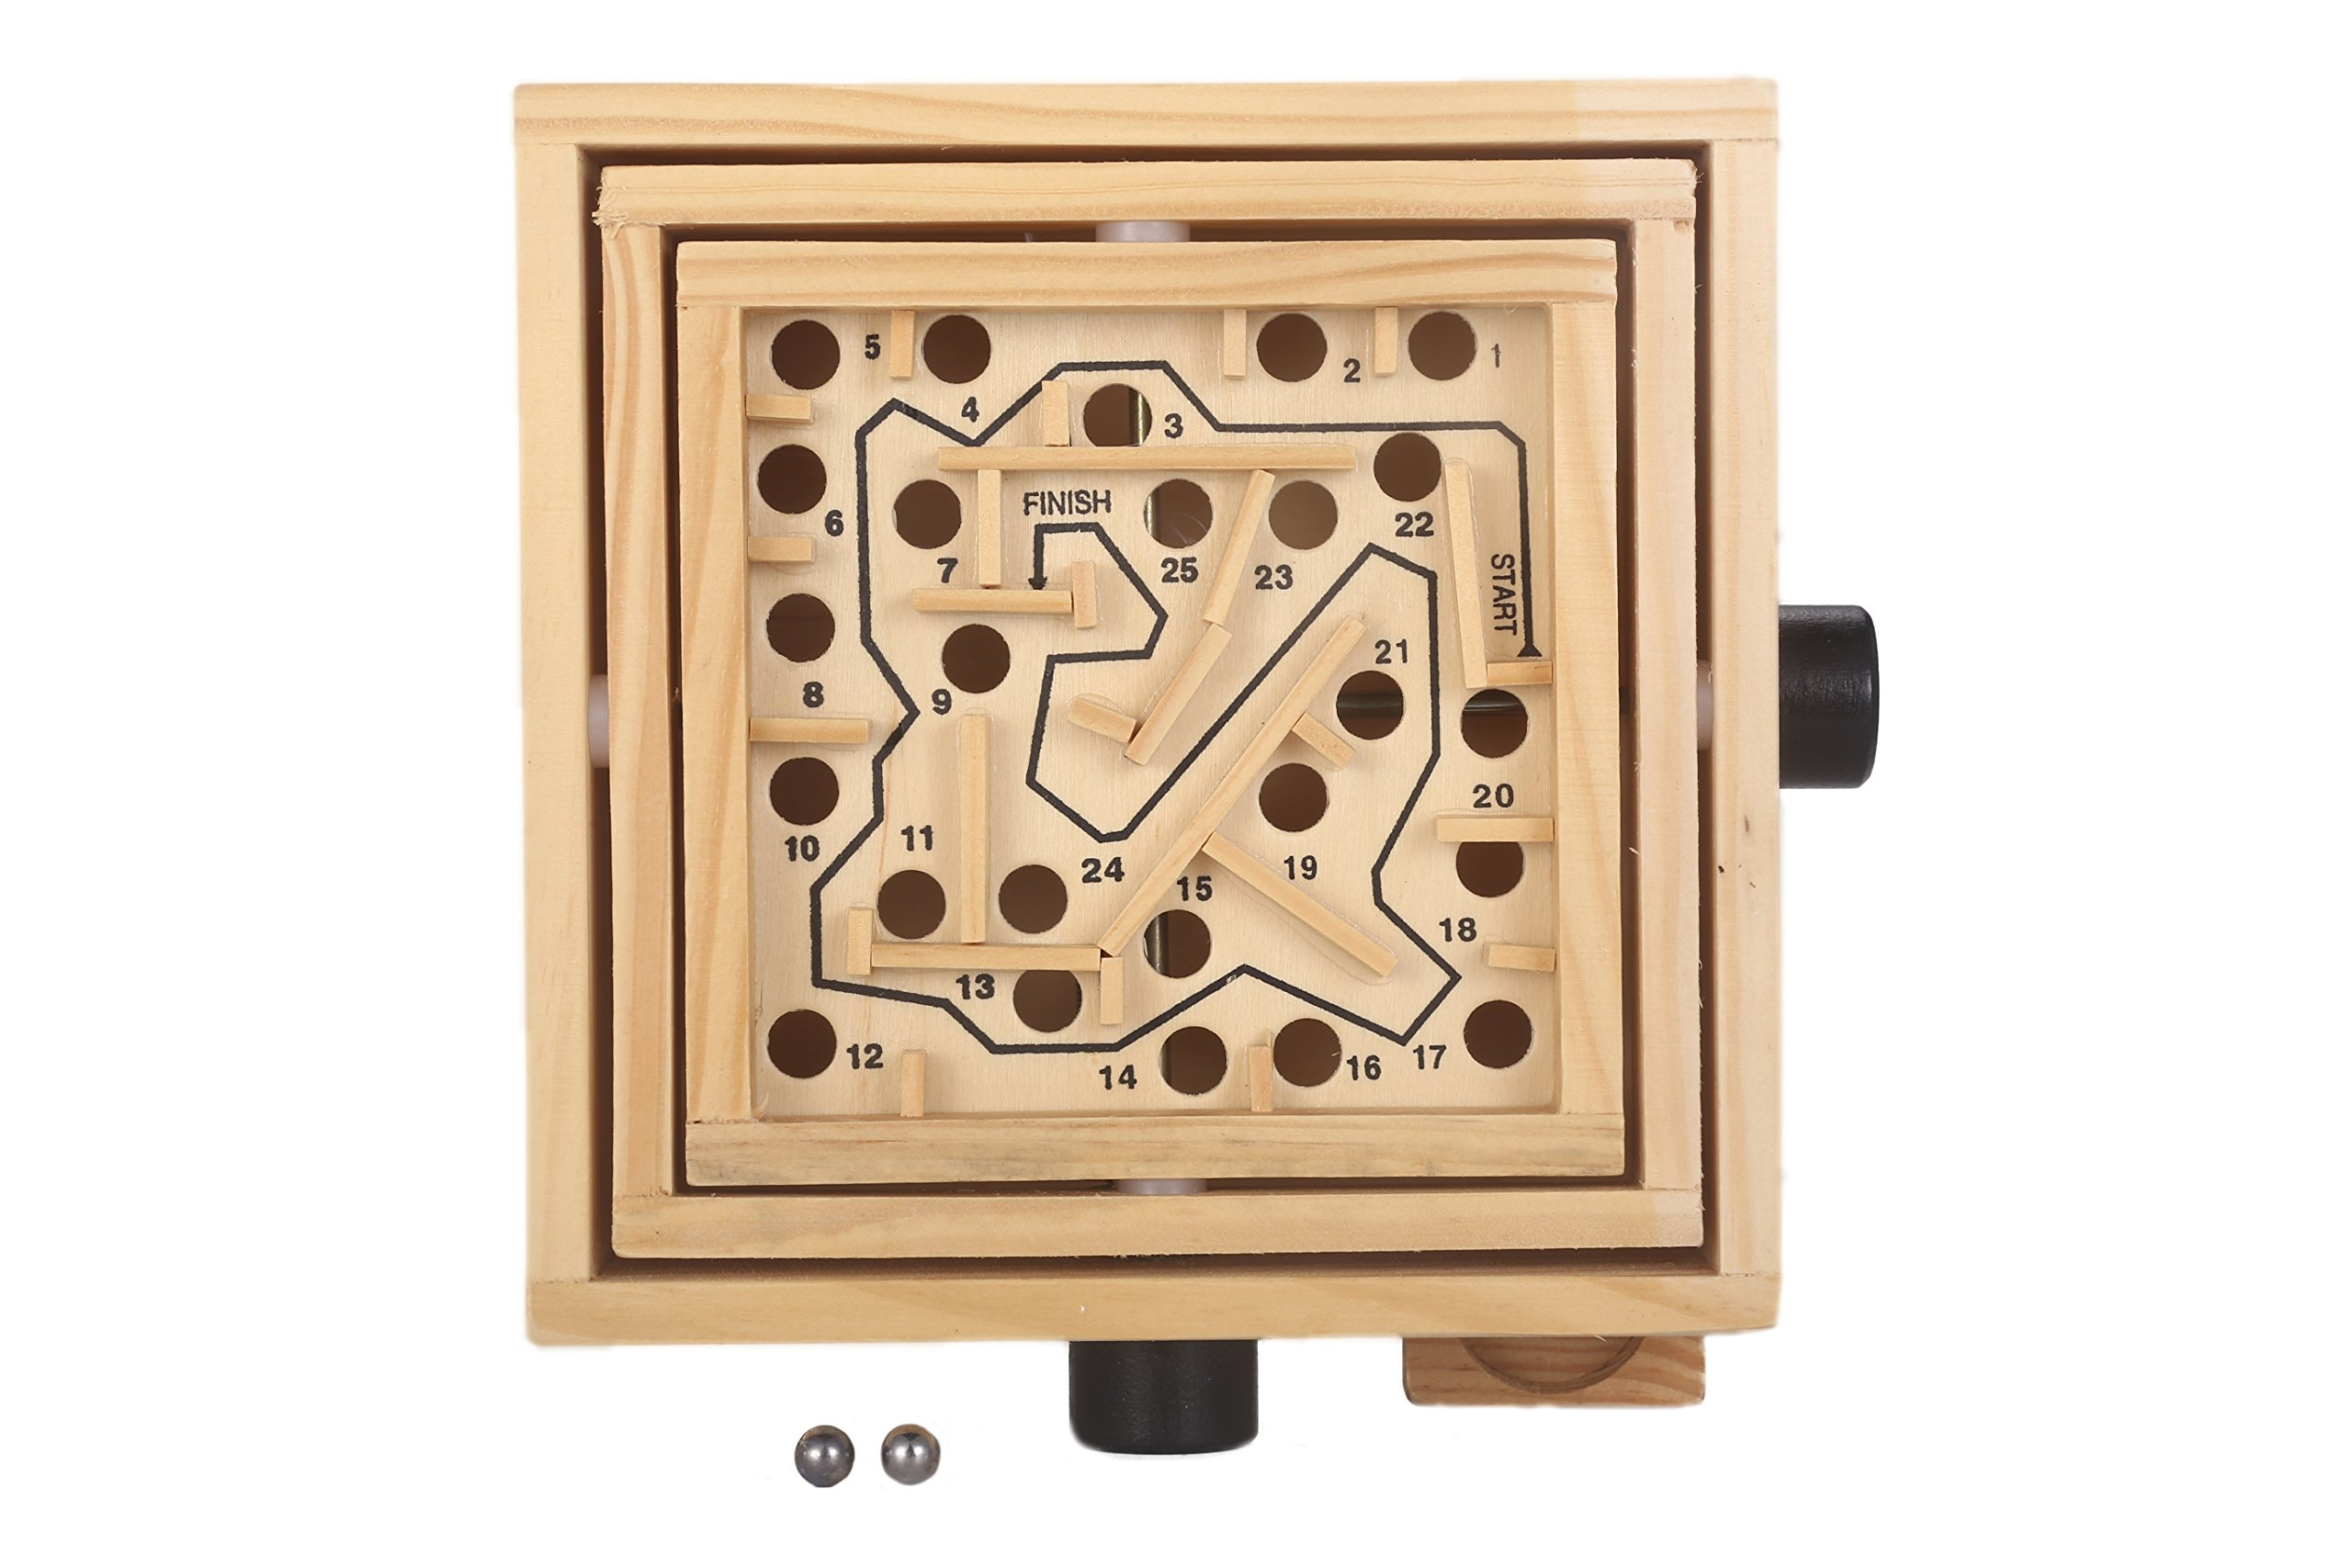 MAGIKON Labyrinth Wooden Maze Game Intellect Puzzle Game with Two Steel Marbles for Adults, Boys and Girls (Normal, Wood)